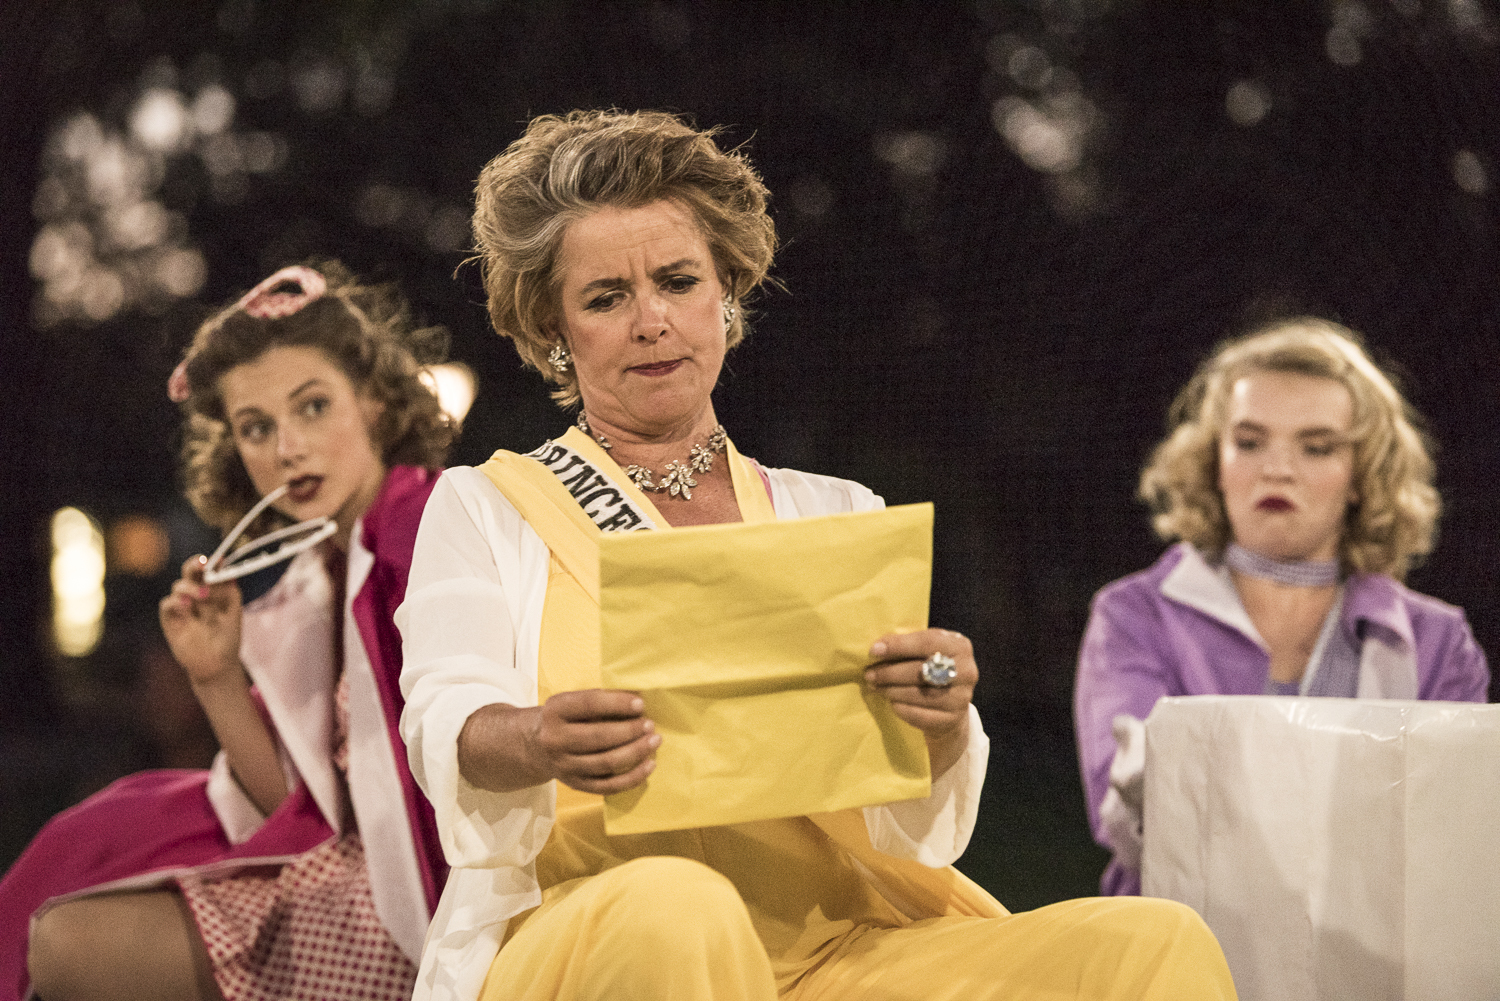 BWW Review: LOVE'S LABOUR'S LOST - Melbourne Shakespeare Company